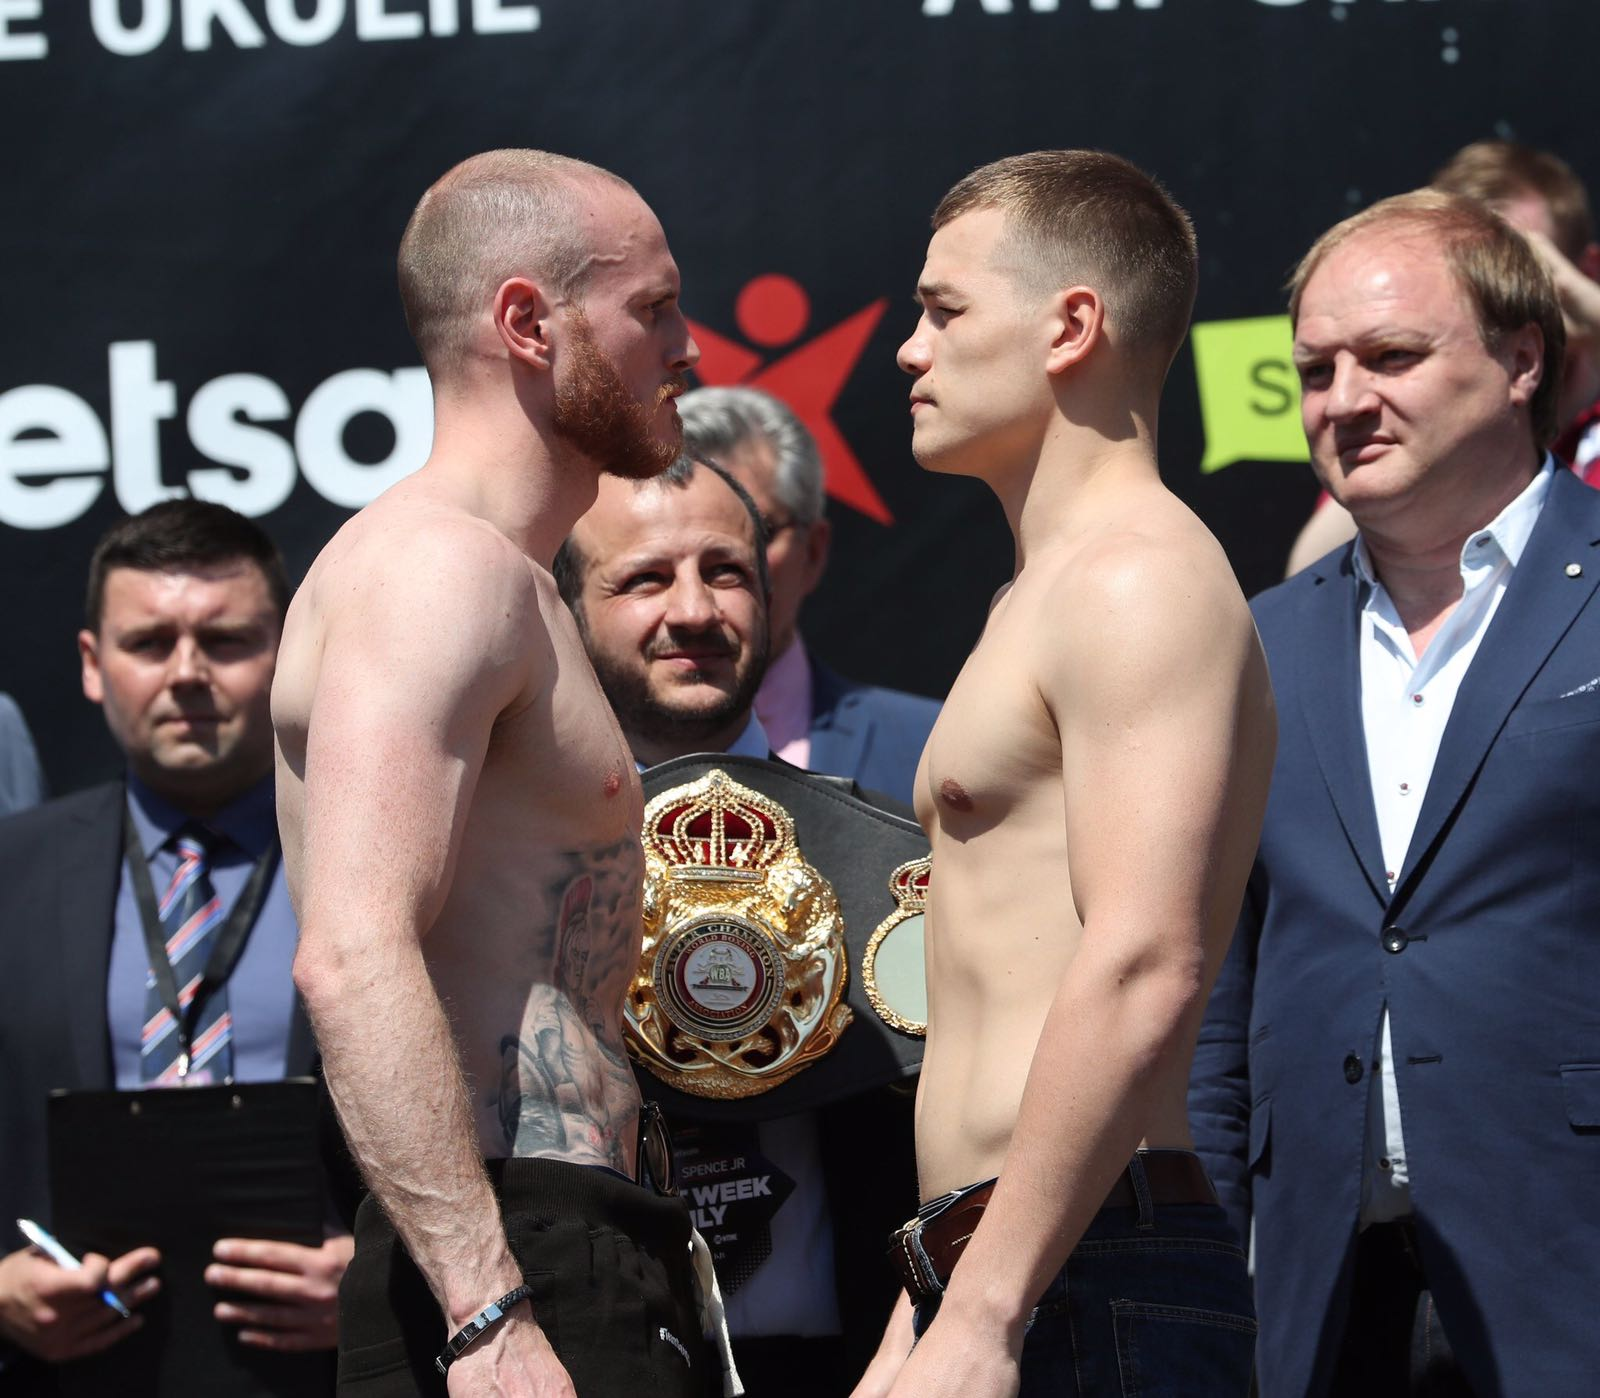 Groves and Chudinov in the weight and ready for the WBA super championship